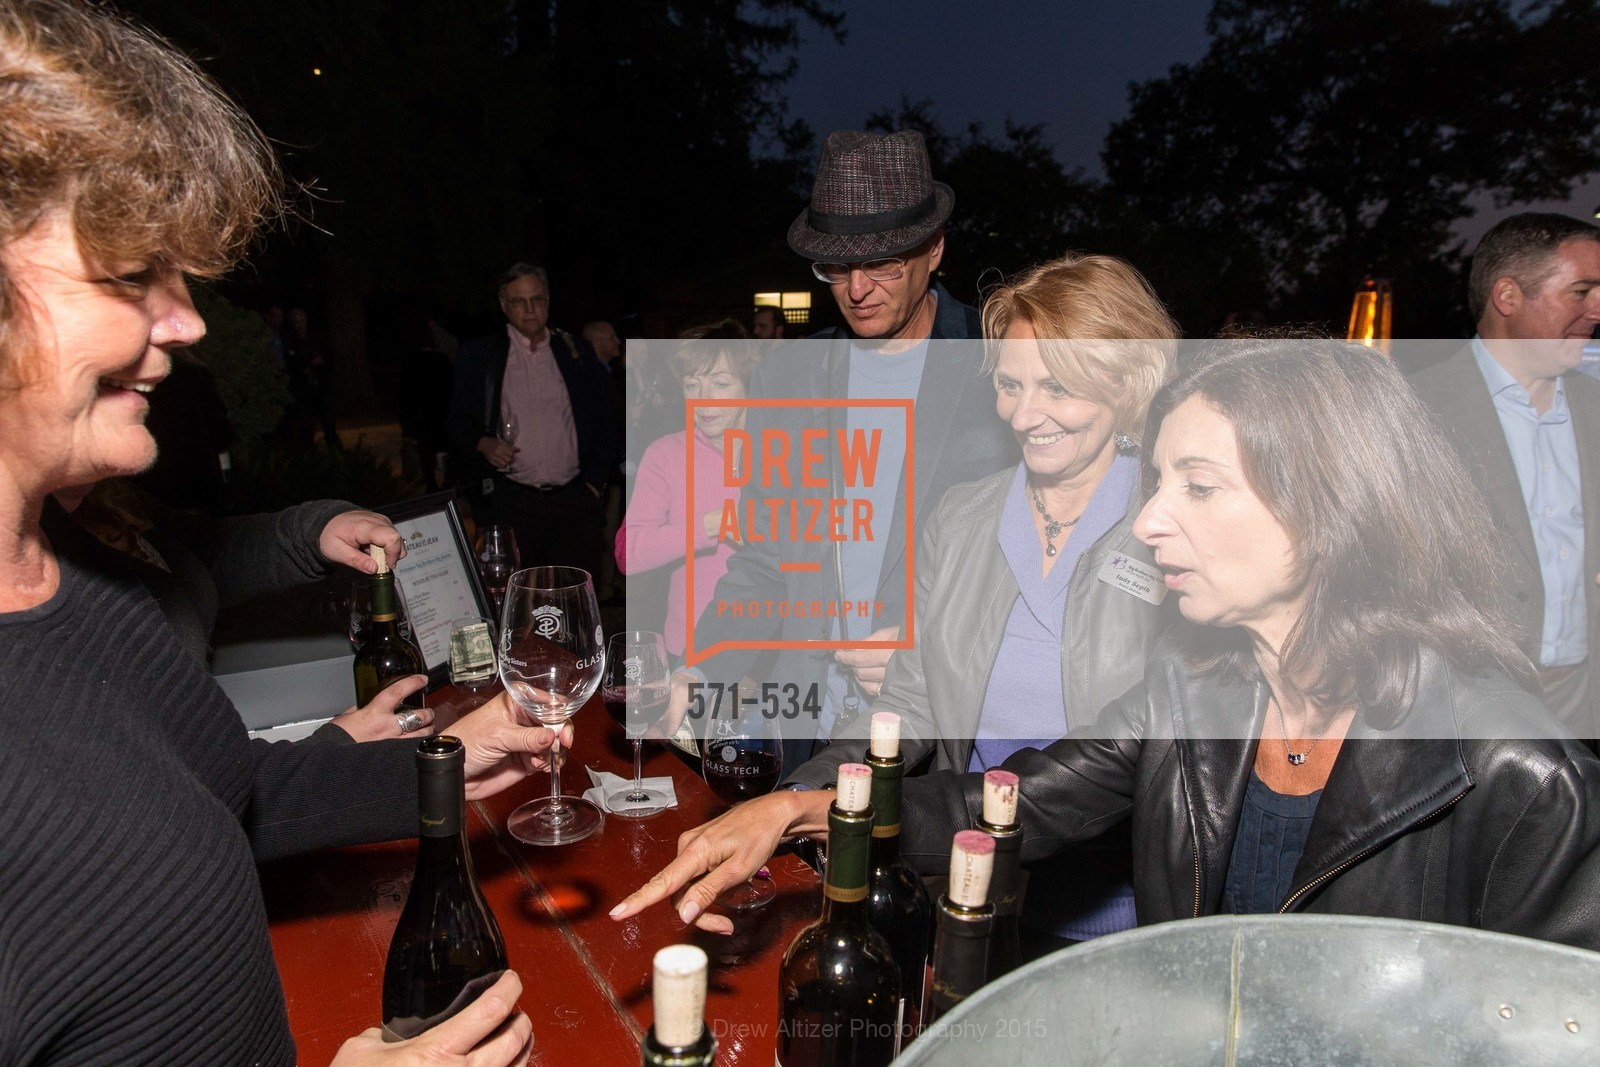 Judy Sepik, RoseAnn Frank, Perfecting Pairings - Food, Wine and Stories, Chateau St Jean, Kenwood, November 14th, 2015,Drew Altizer, Drew Altizer Photography, full-service agency, private events, San Francisco photographer, photographer california